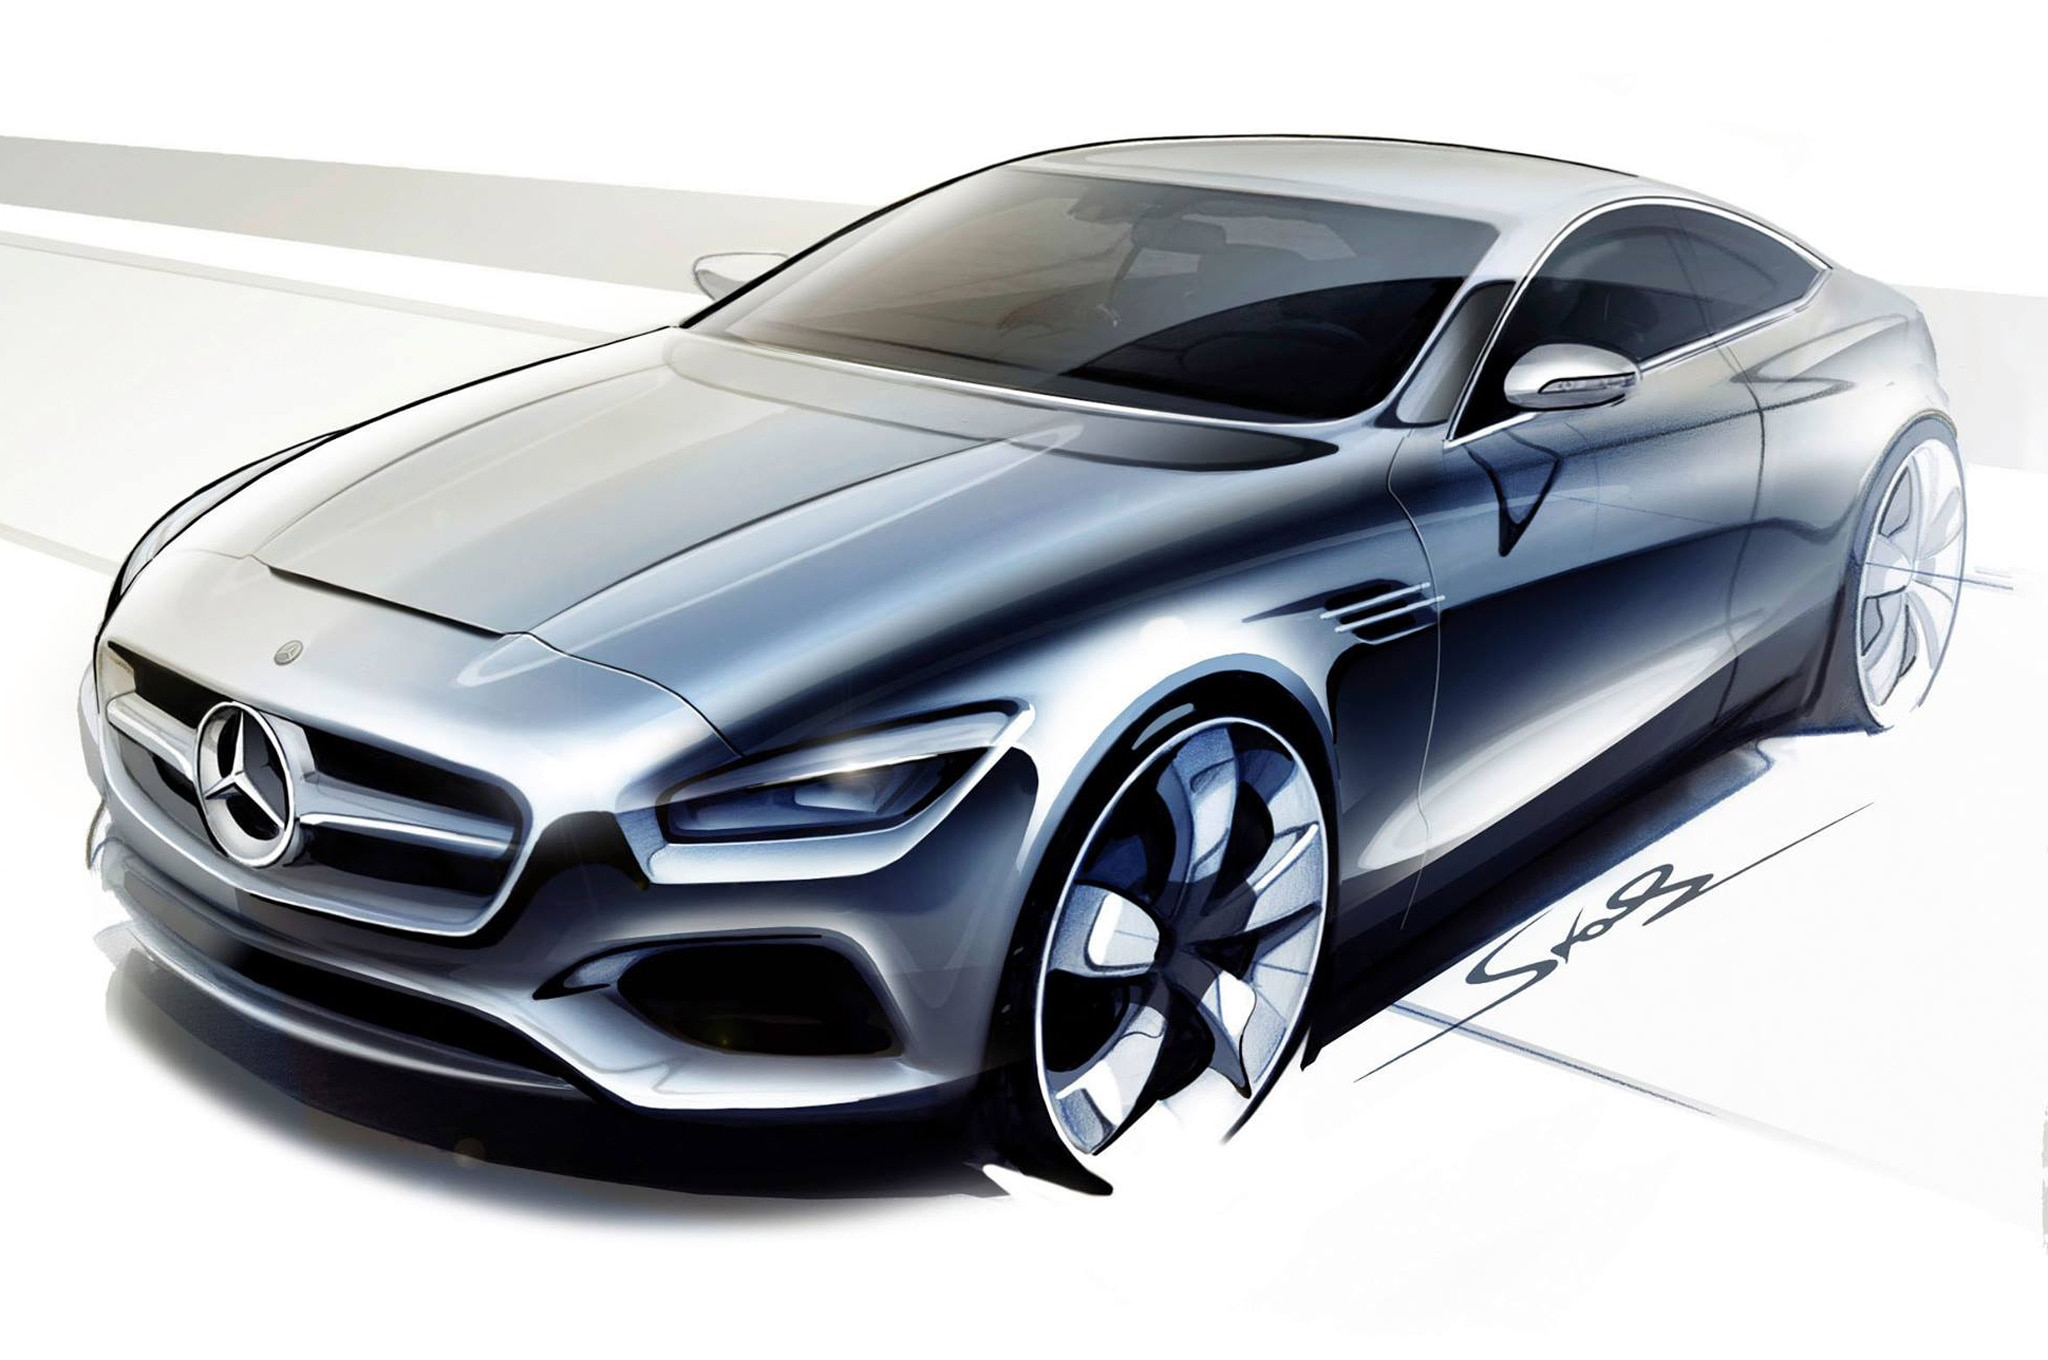 mercedes benz s class coupe concept teased before. Black Bedroom Furniture Sets. Home Design Ideas